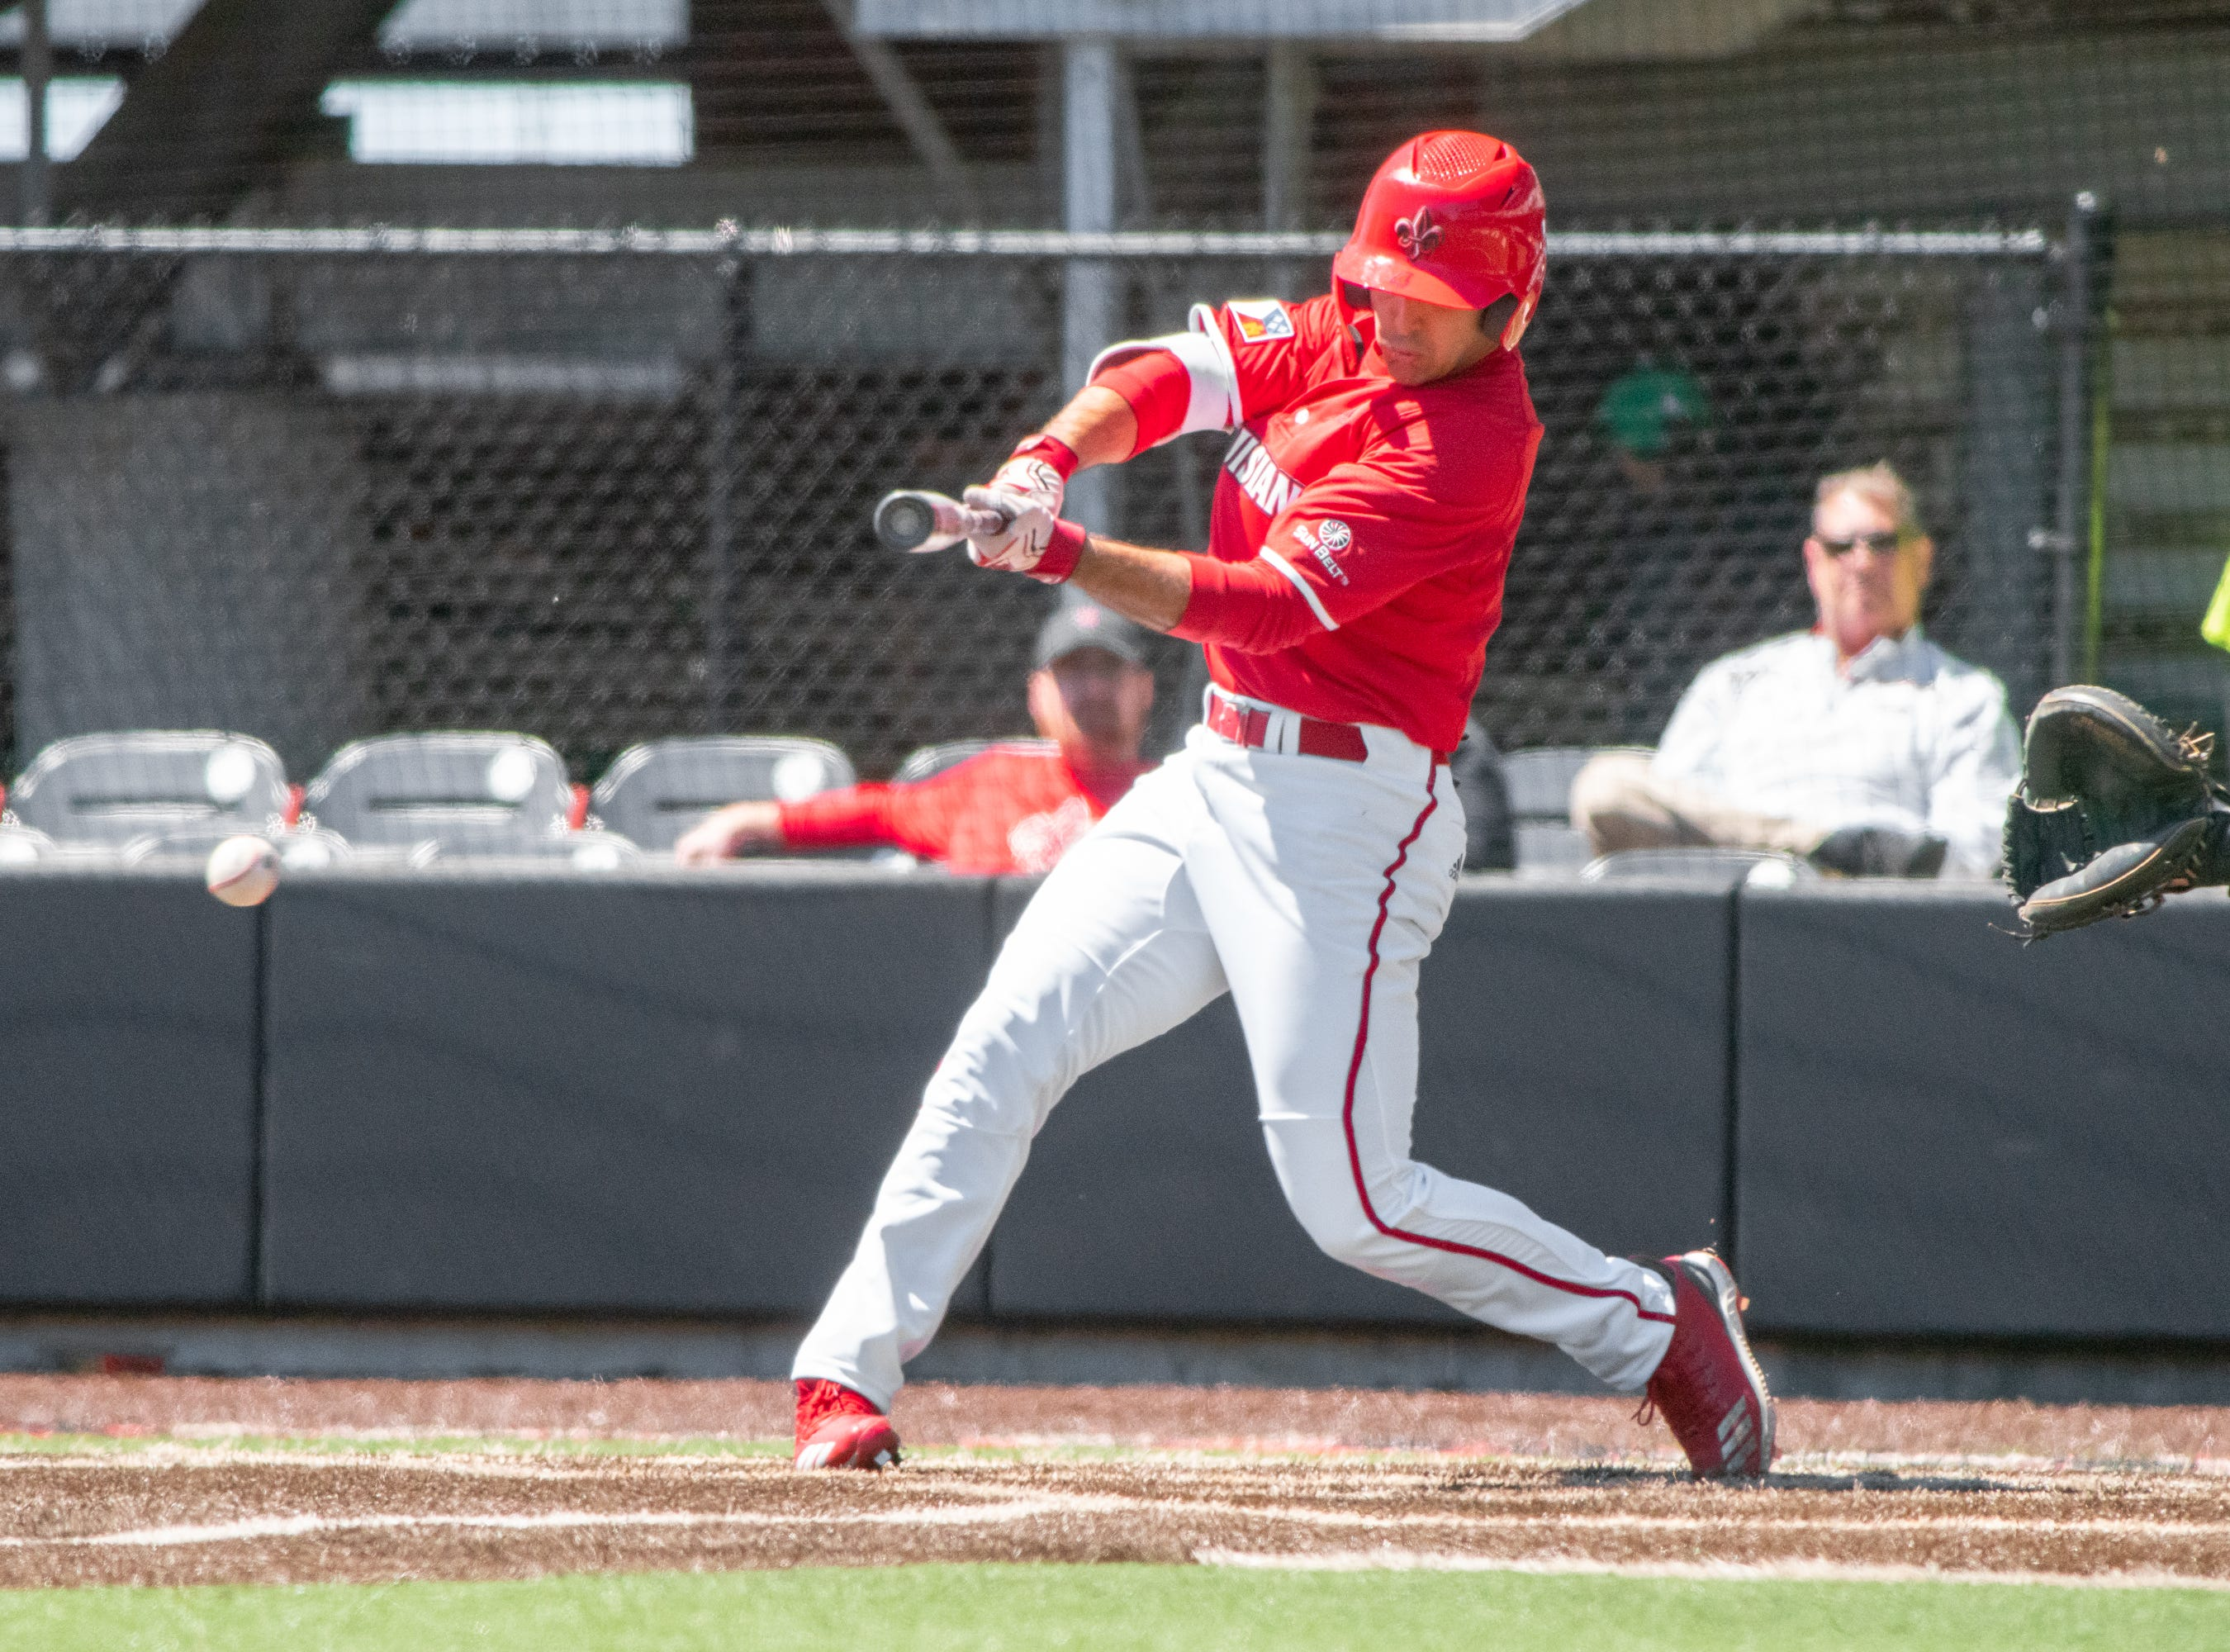 """UL's Brennan Breaux hits the incoming pitch as the Ragin' Cajuns take on the South Alabama Jaguars at M.L. """"Tigue"""" Moore Field on Sunday, April 14, 2019."""